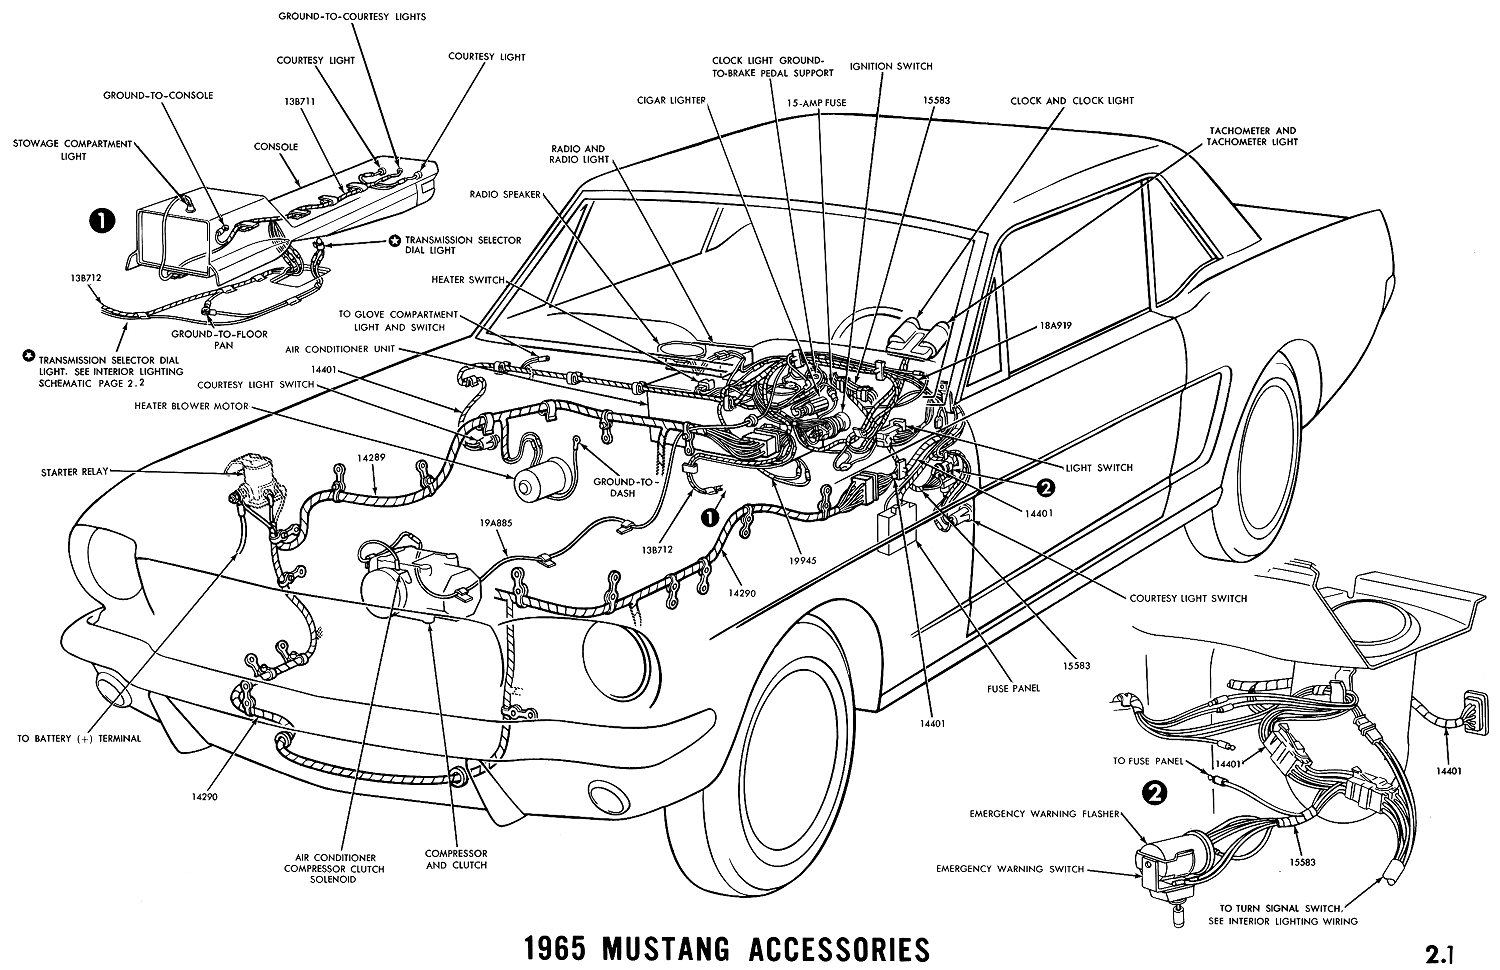 1965 Mustang Wiring Diagrams Average Joe Restoration 12 Volt Fuse Block Diagram Schematic Accessories Pictorial Or